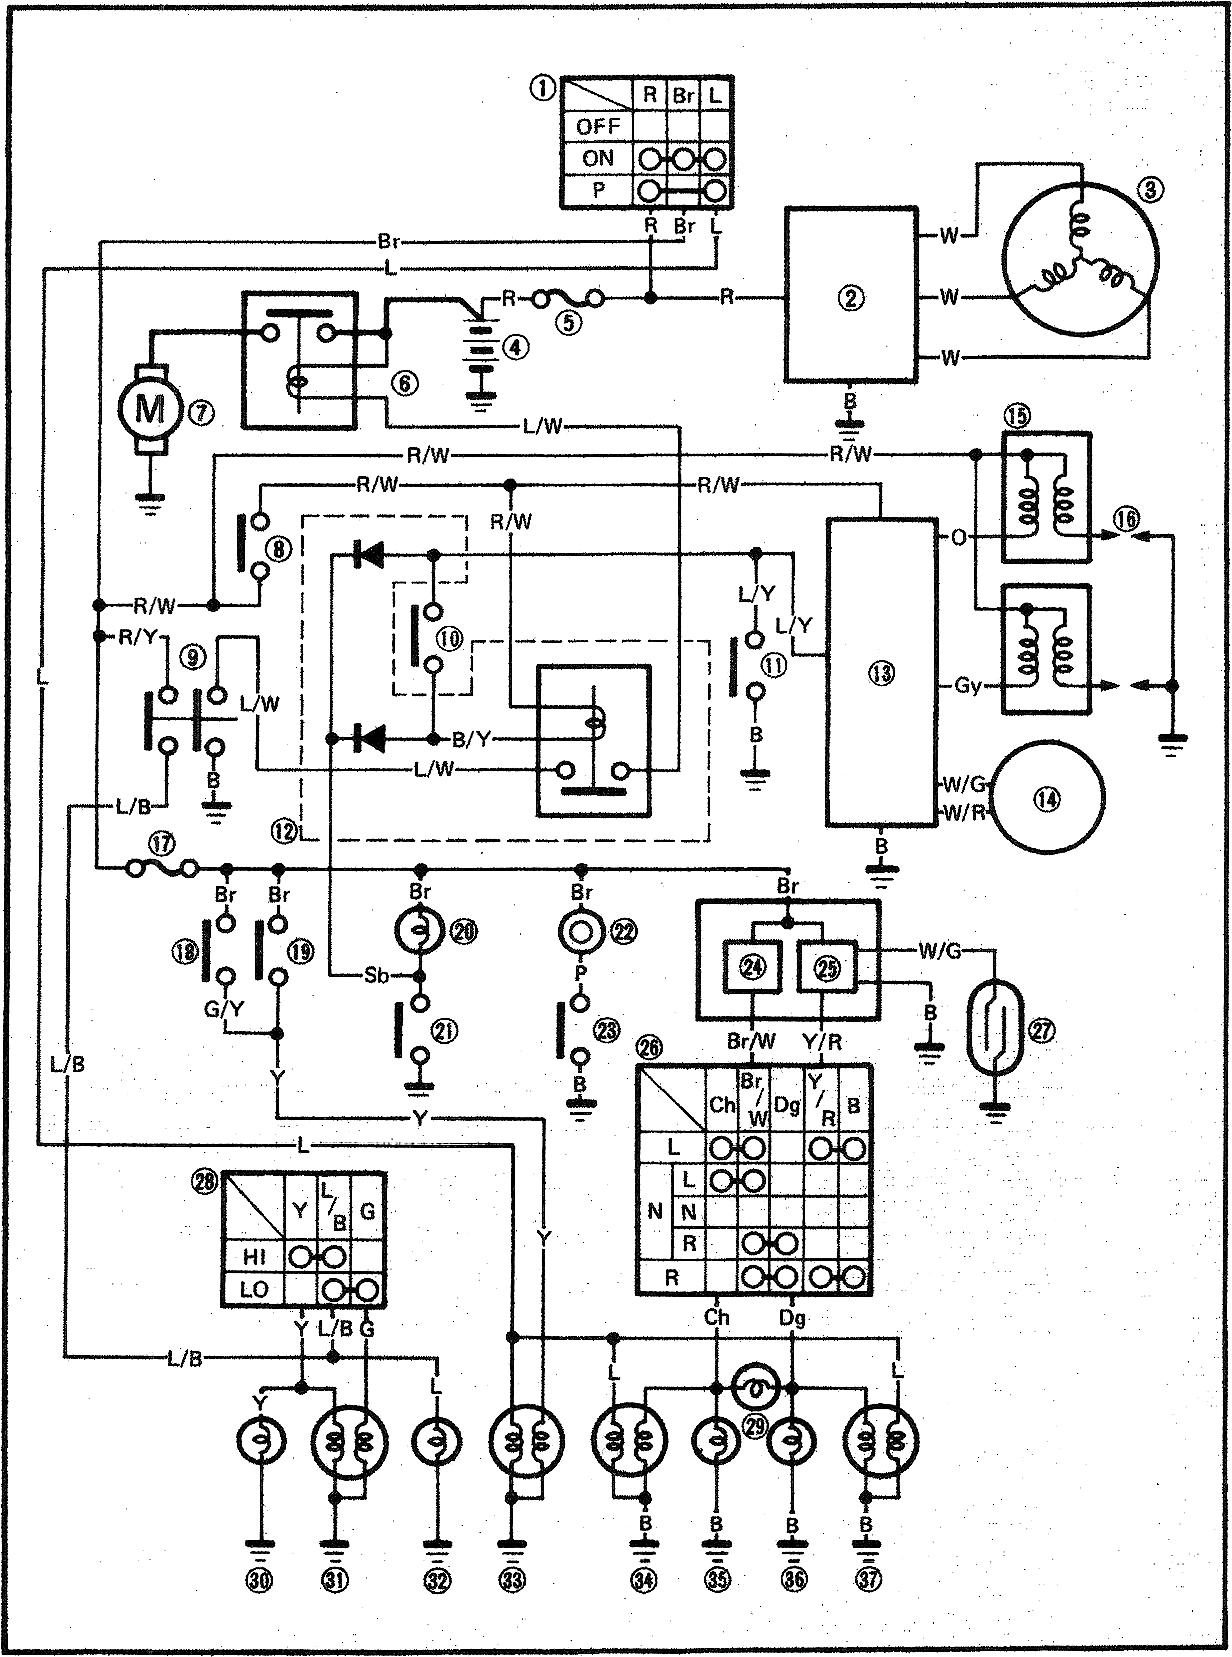 xv250wiring wiring diagrams suzuki dr200 wiring diagram at n-0.co